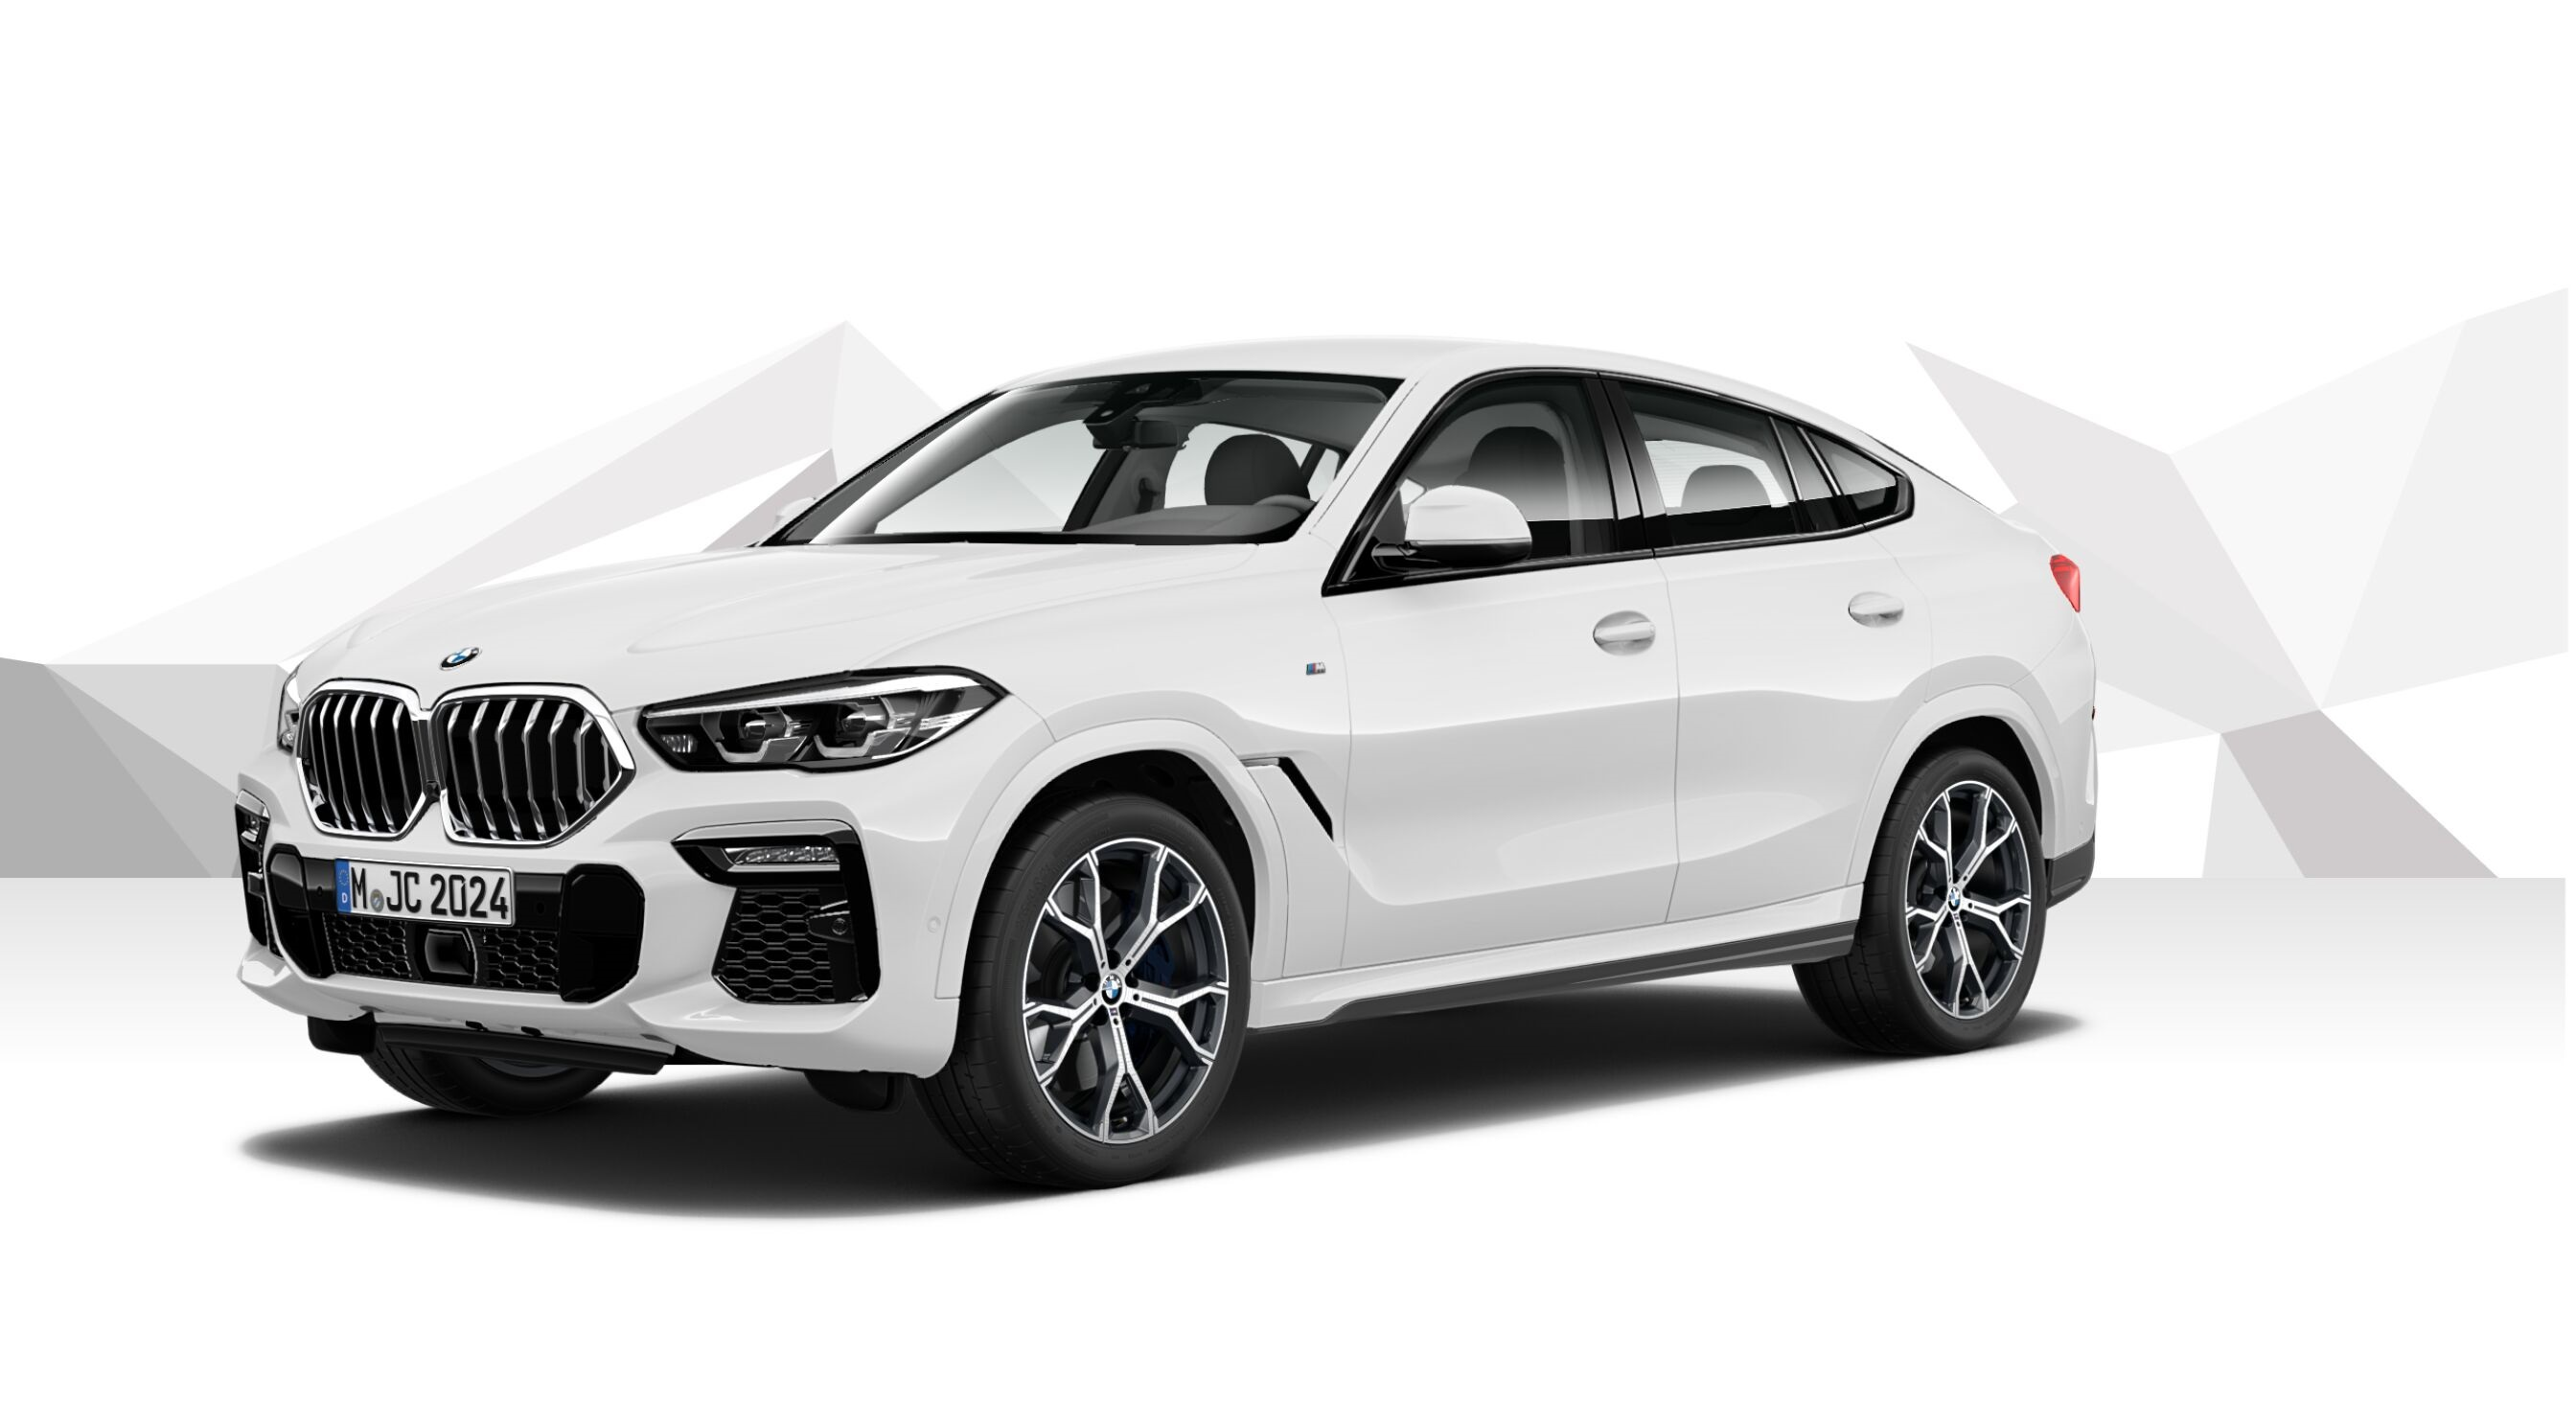 BMW BMW X6 xDrive30d M Sport (Including Optional Technology Package)